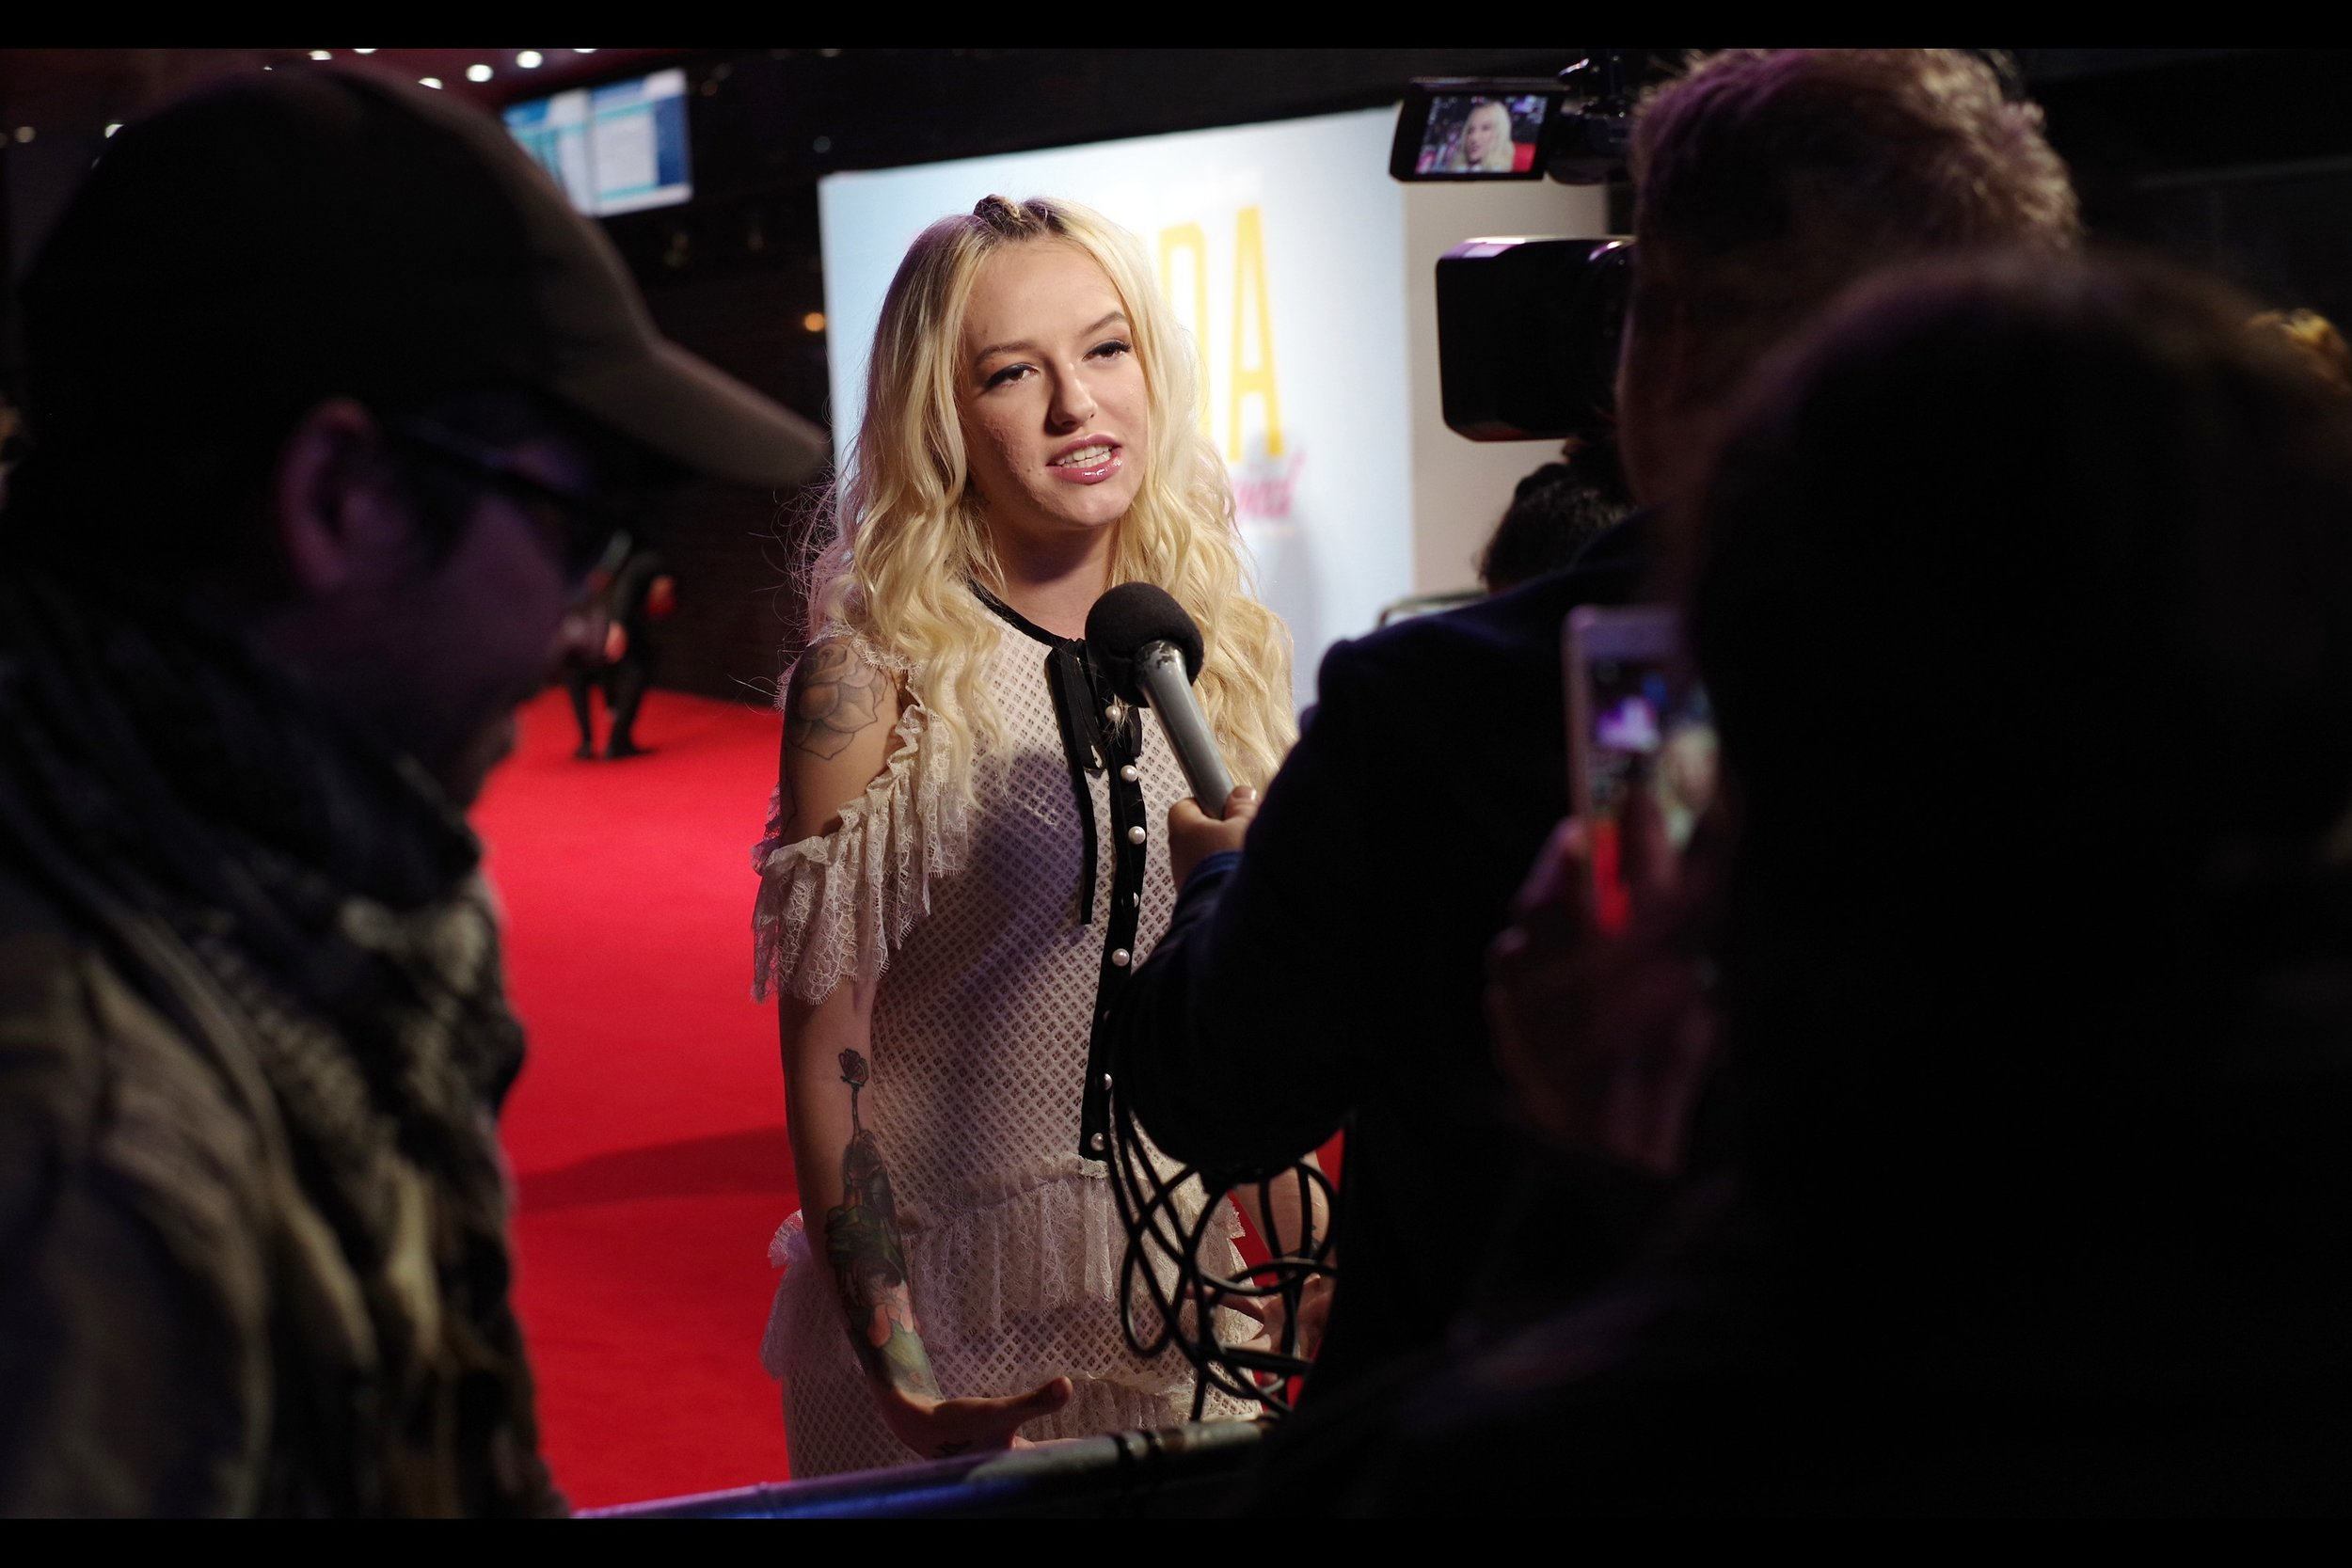 """""""You're holding the camera and holding the microphone while interviewing me.... is there anything I can do to make things easier?""""  - Bria Vinaite presently has an imdb.com listing that mentions only her role in this film, and the role of """"Herself"""" in something called 'celebrity page'"""